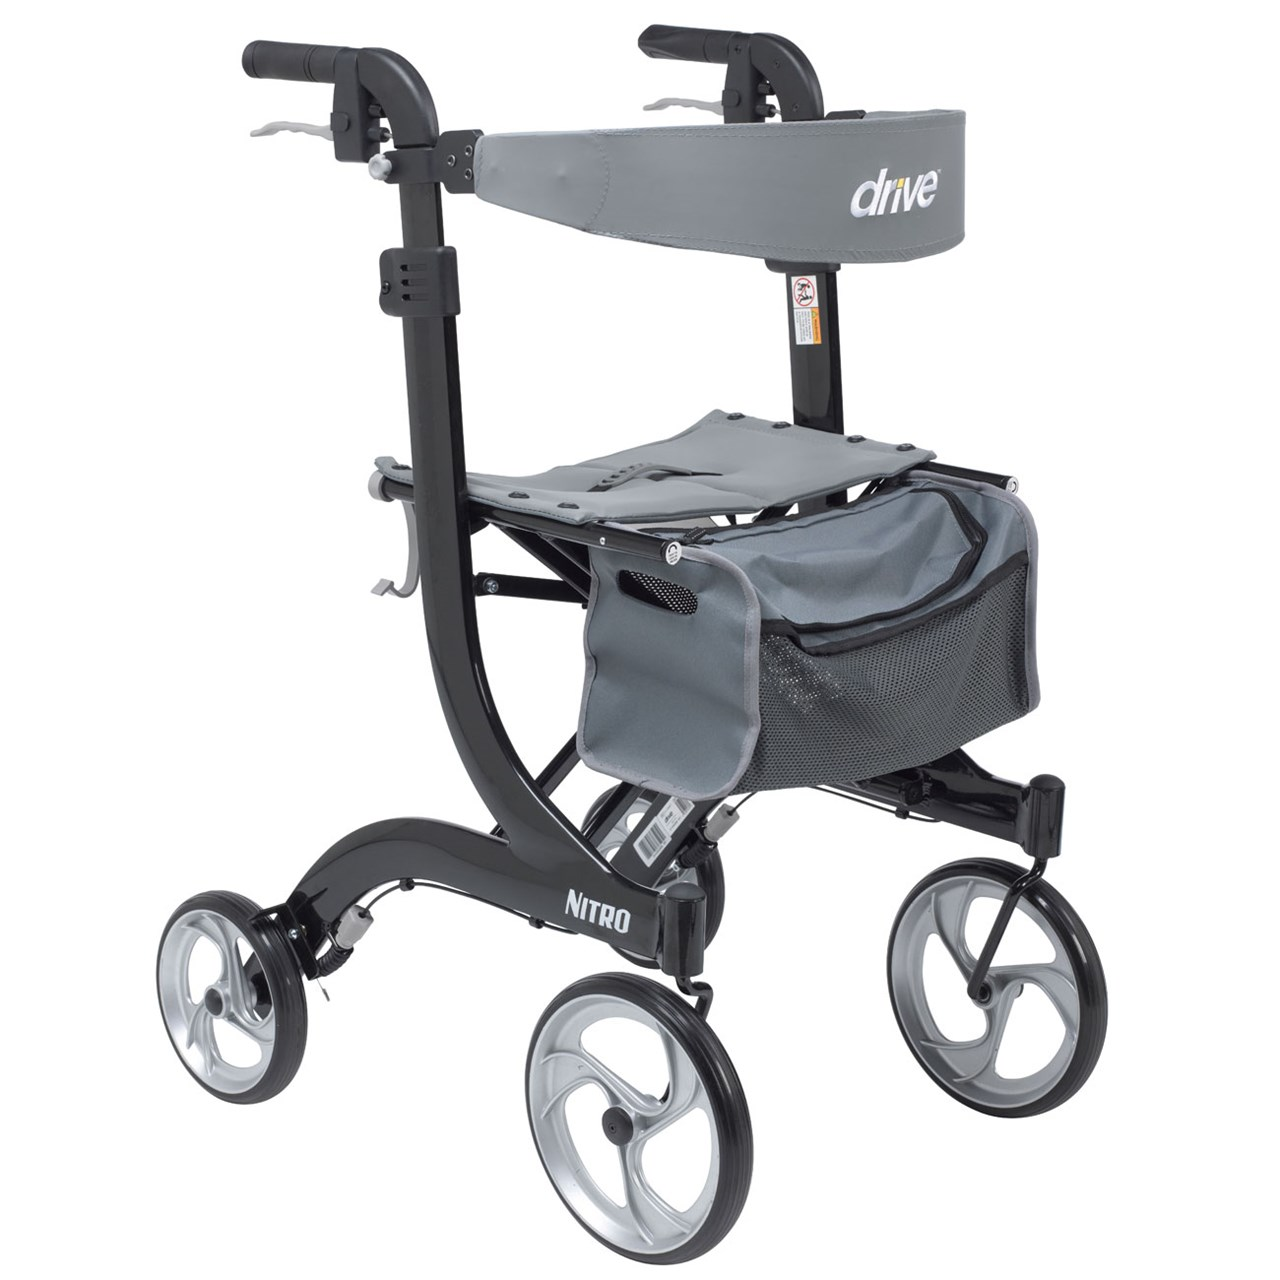 Nitro Aluminum 4 Wheel Rollator - Tall Height - 10-inch Casters